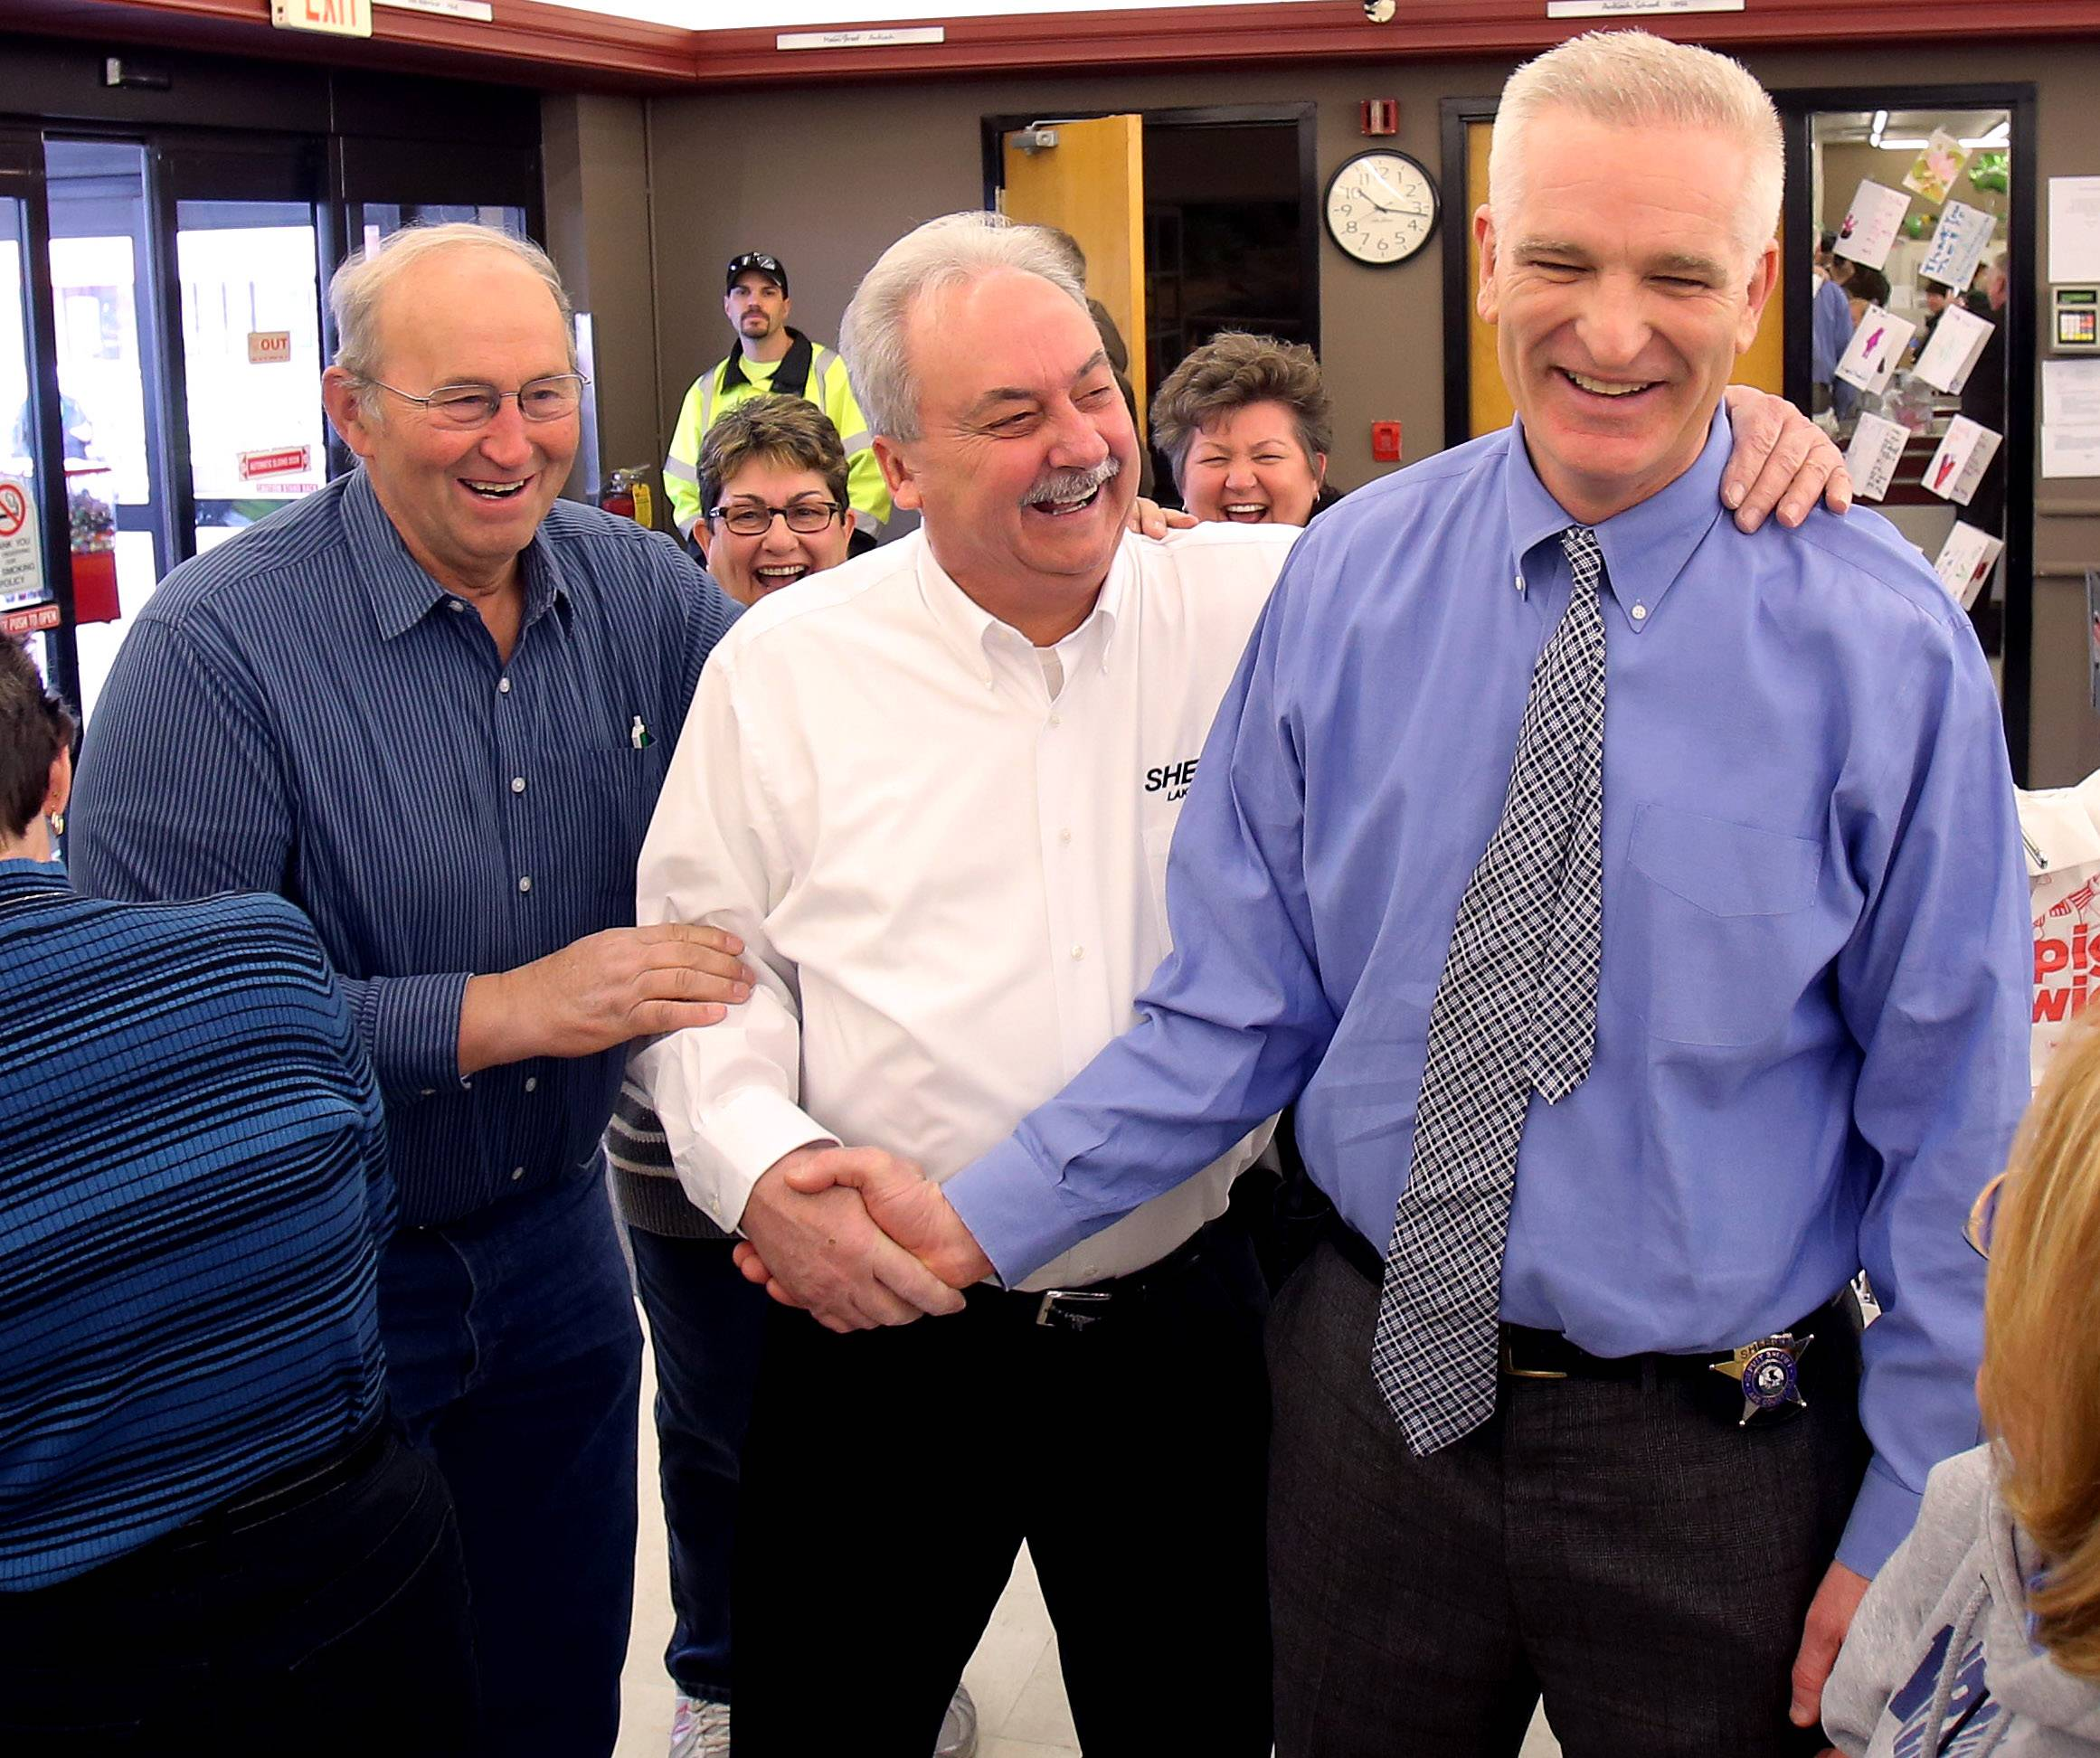 Former Fremont Township Supervisor Pete Tekampe, left, and Lake County Undersheriff Ray Rose, middle, congratulate Lake County Sheriff Mark Curran for his victory Thursday in the Lake County Farm Bureau's 16th Annual Race for Hunger at Piggly Wiggly in Antioch.